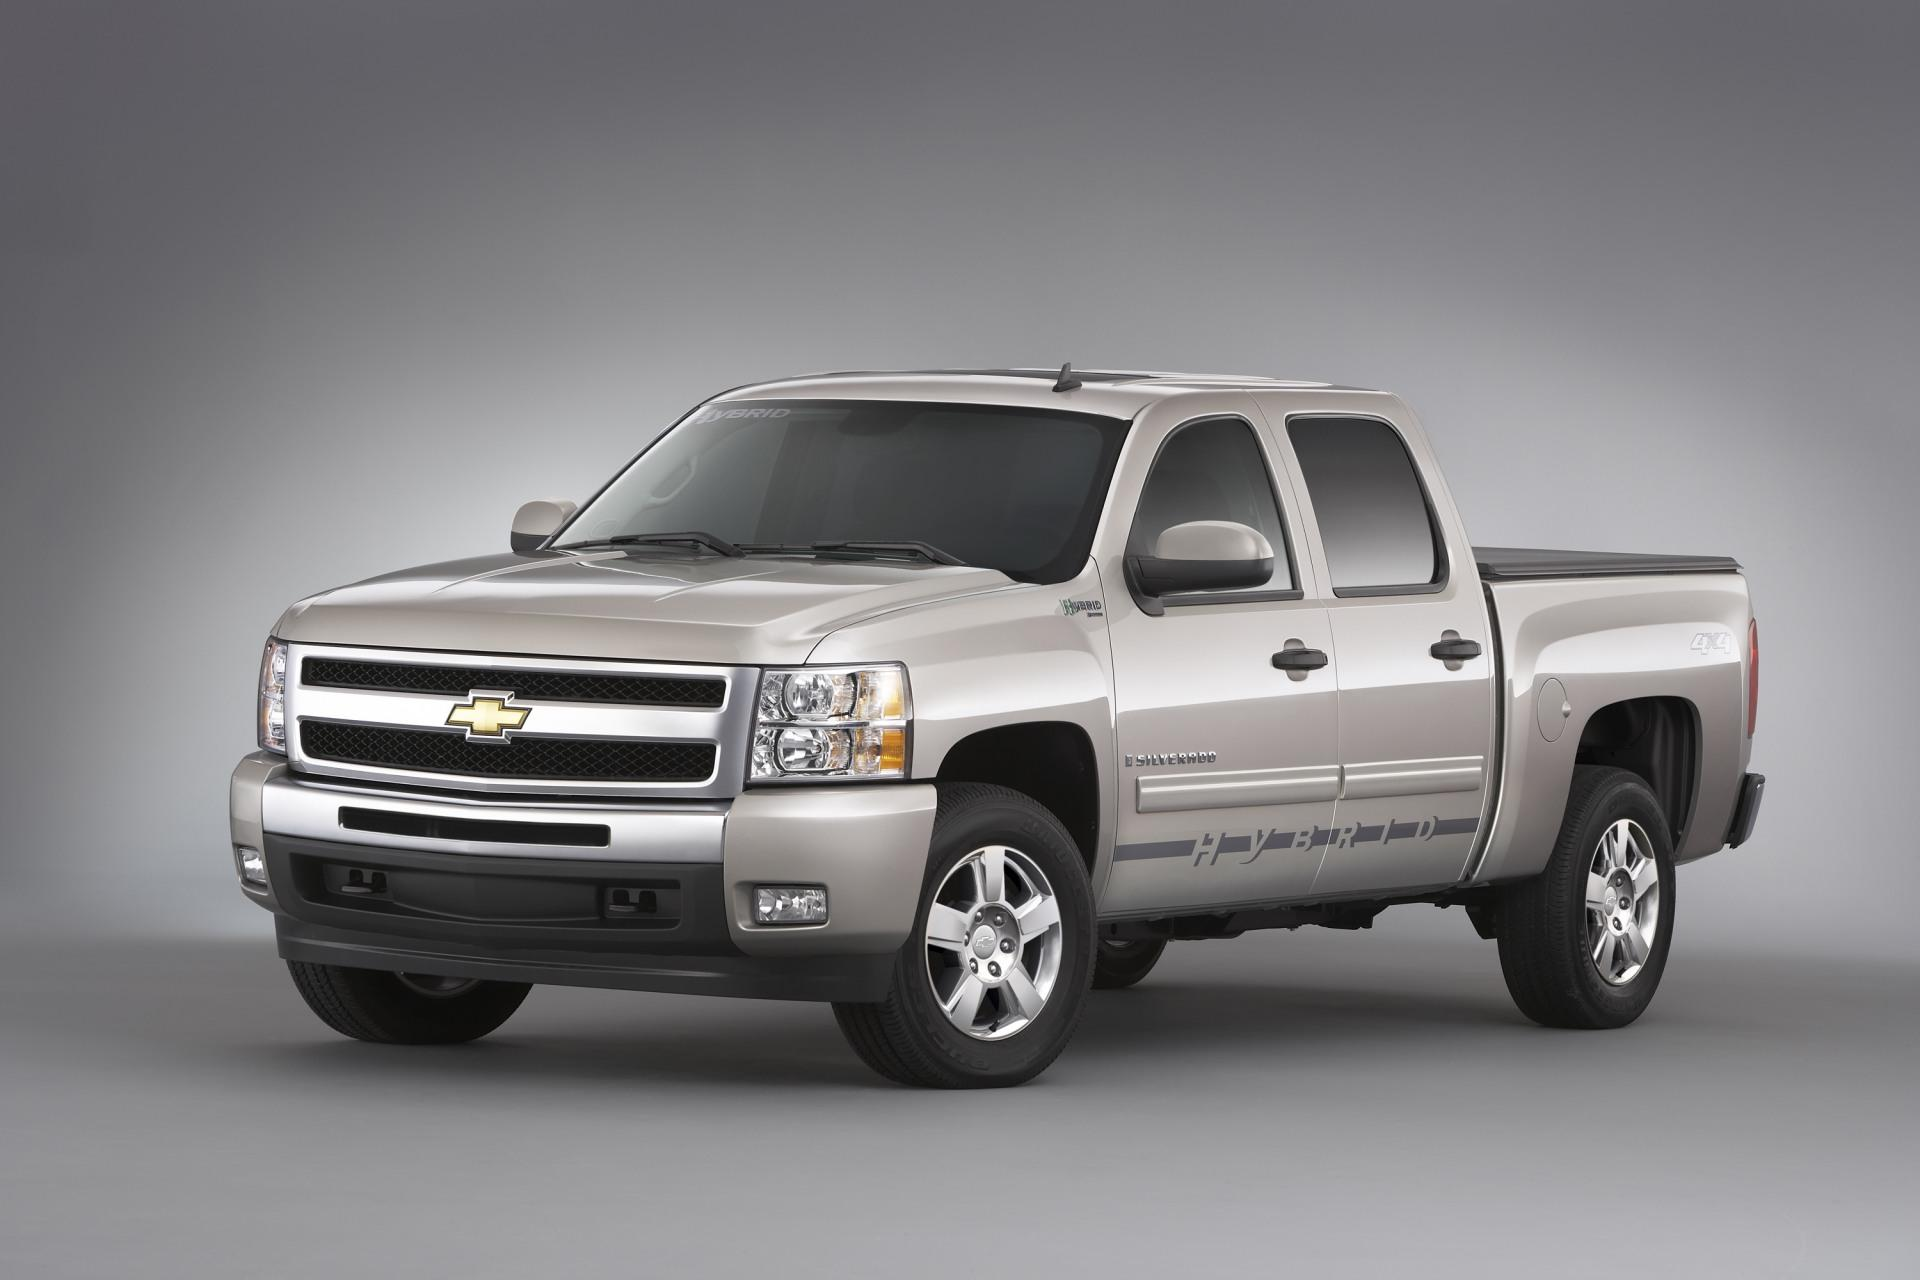 2009 chevrolet silverado hybrid. Black Bedroom Furniture Sets. Home Design Ideas